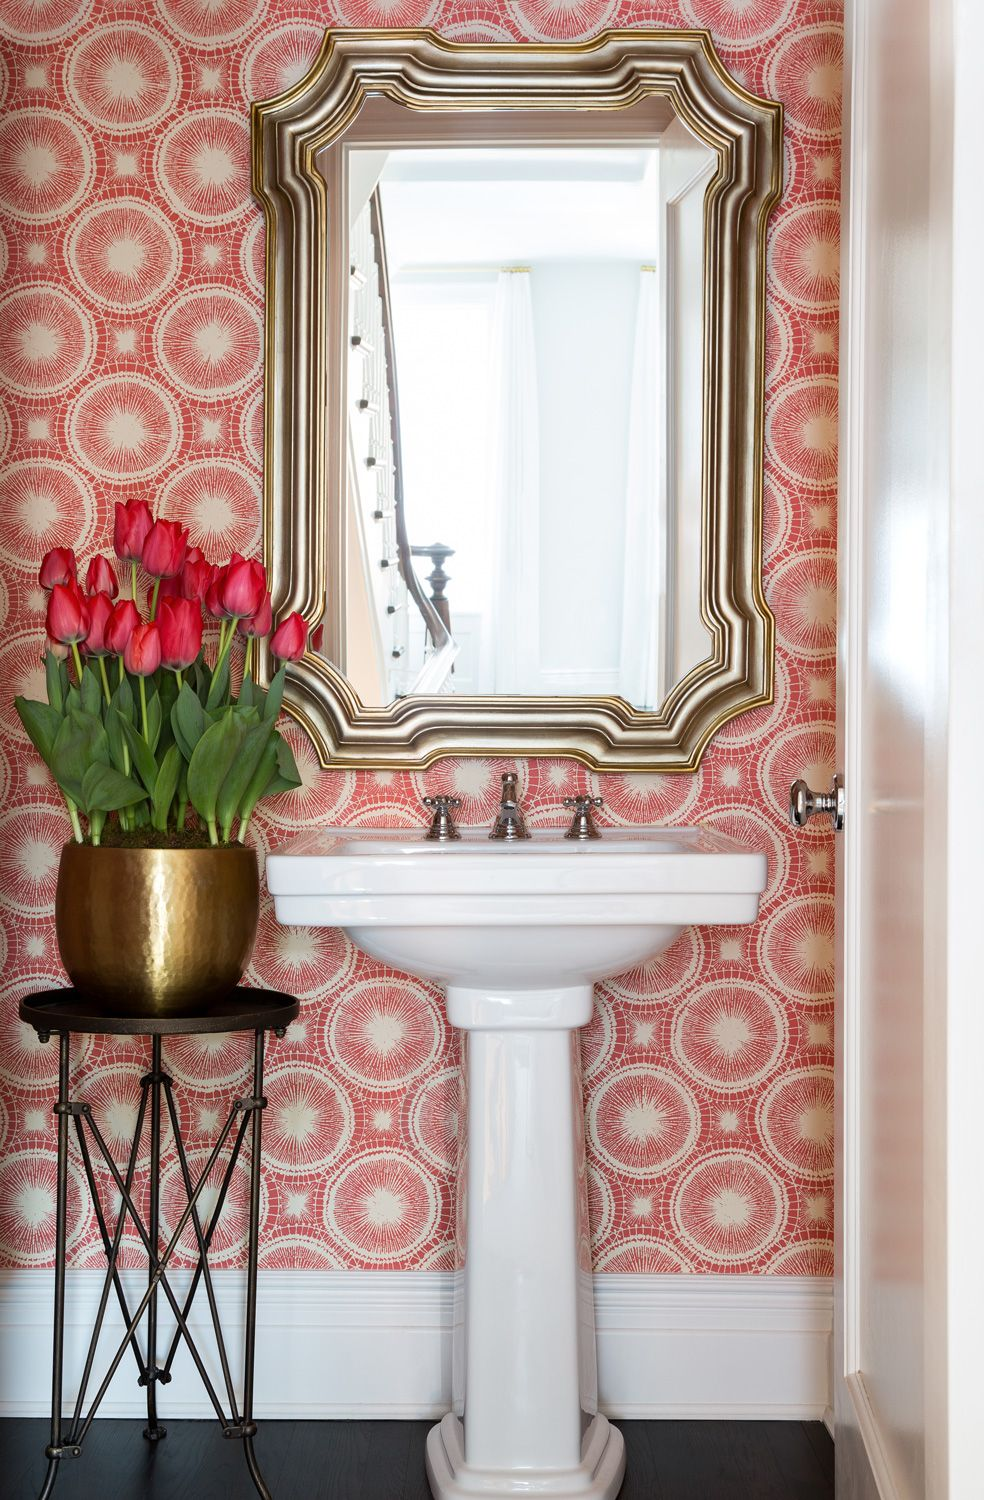 Graphic wall paper and a bold mirror create a luxurious powder room. Photo by Ball & Albanese